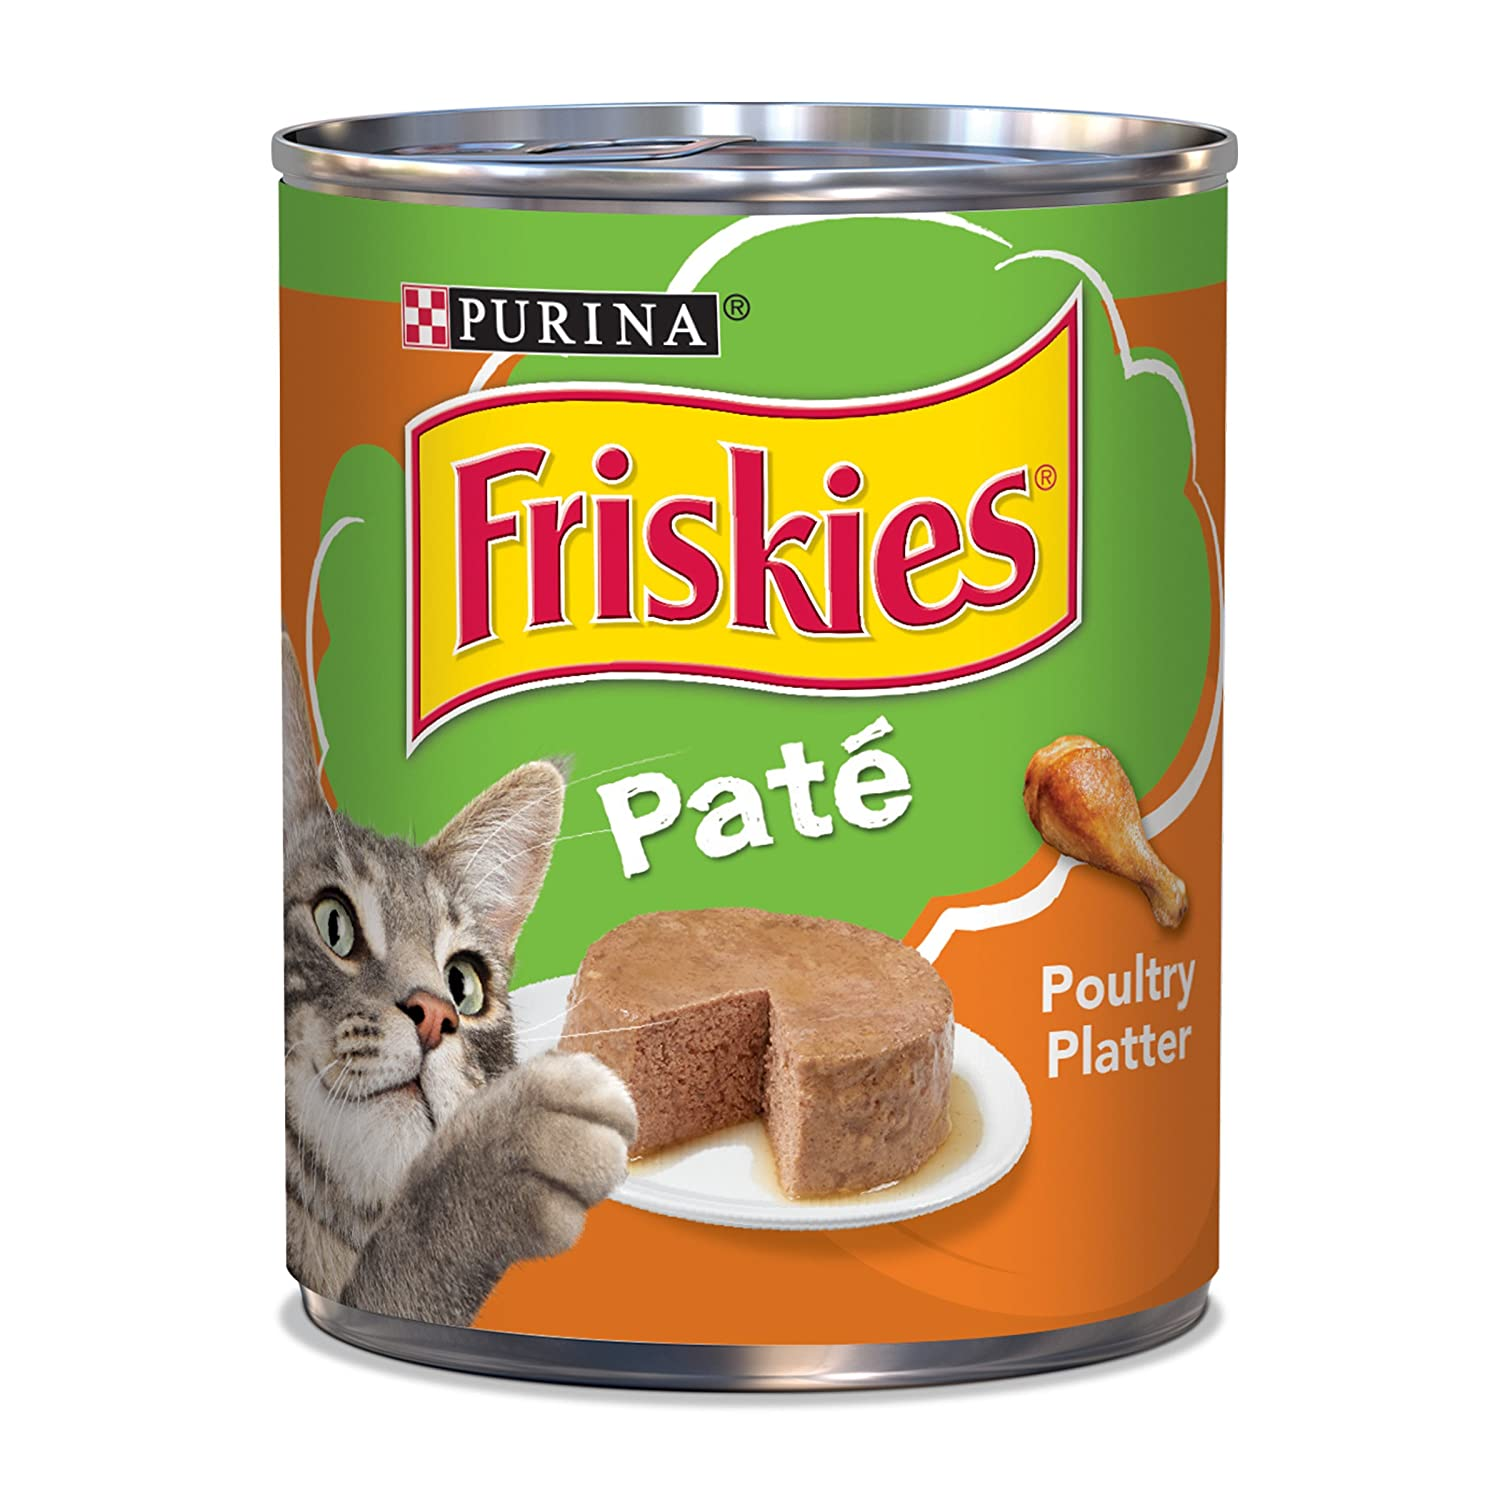 Purina Friskies Classic Pate Poultry Platter Wet Cat Food - (12) 13 oz  Cans